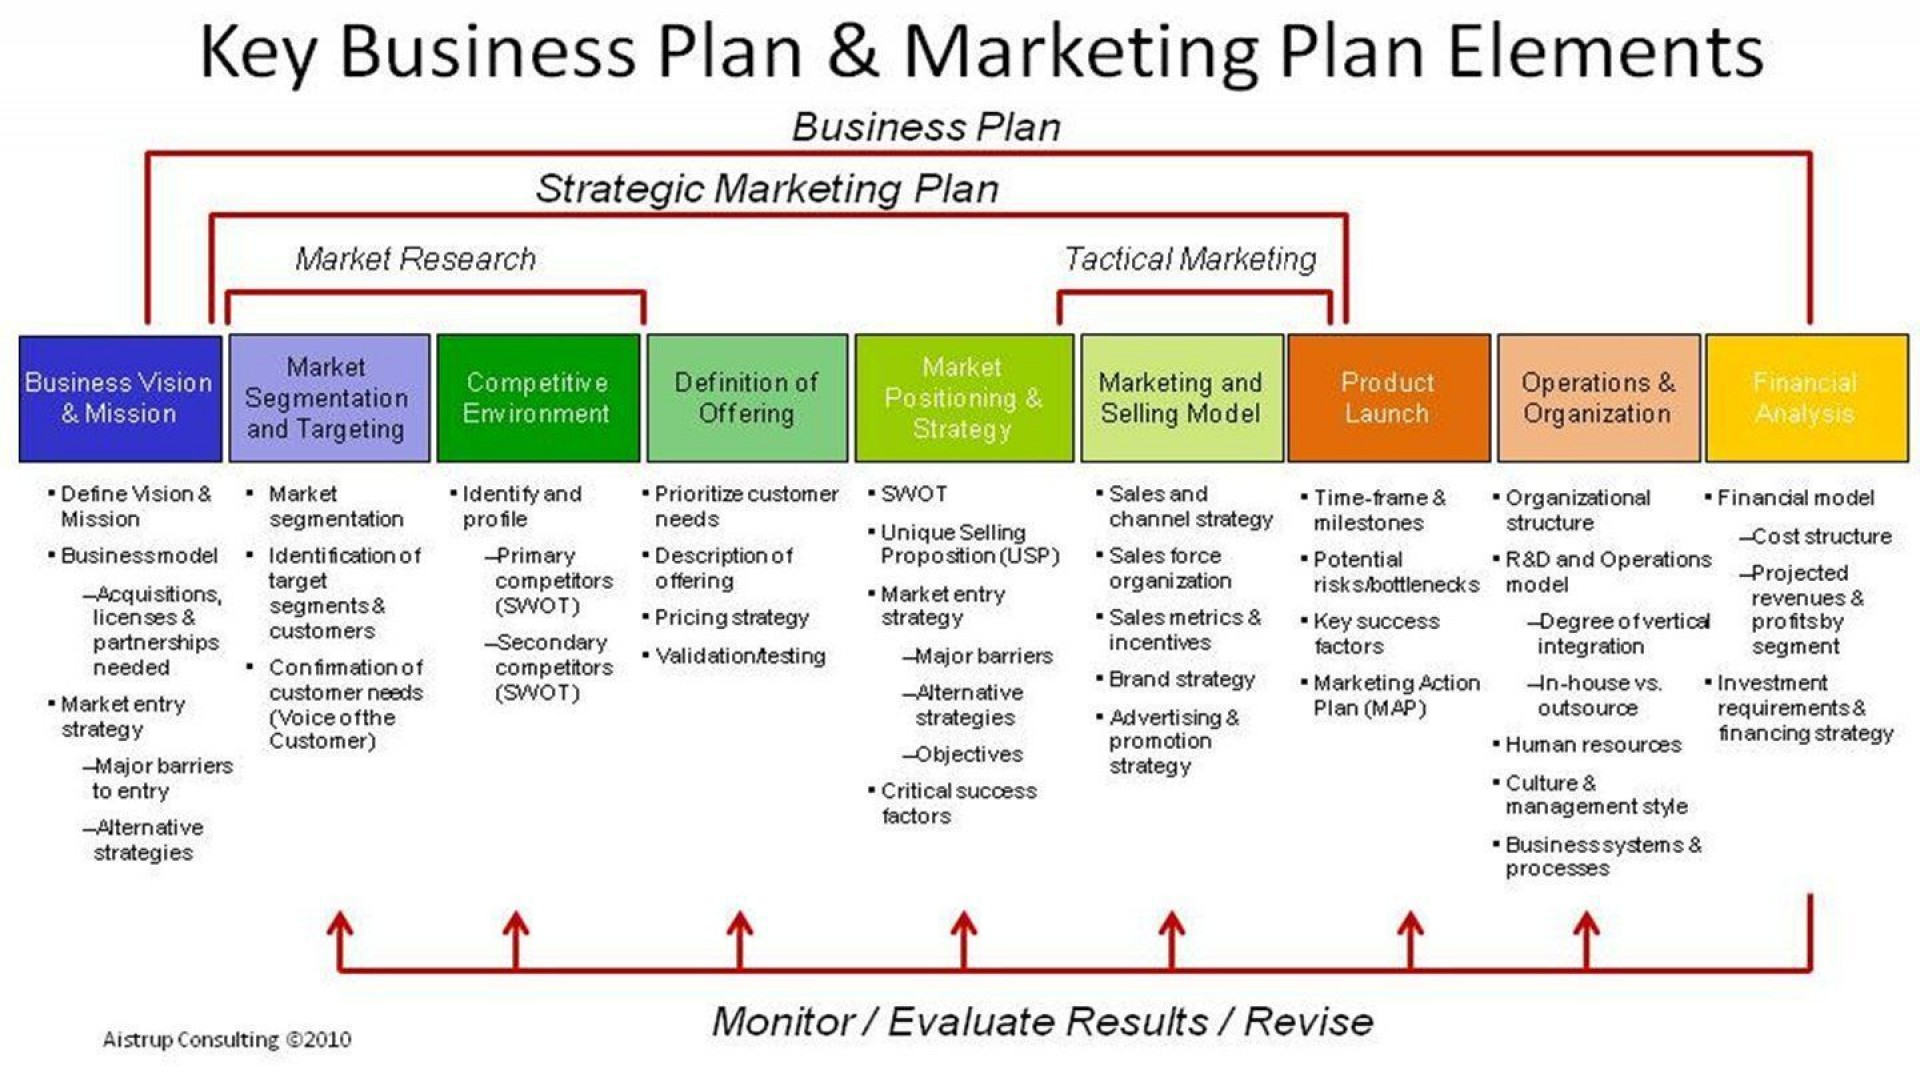 003 Dreaded Strategic Busines Plan Template Image  Templates Free Example1920